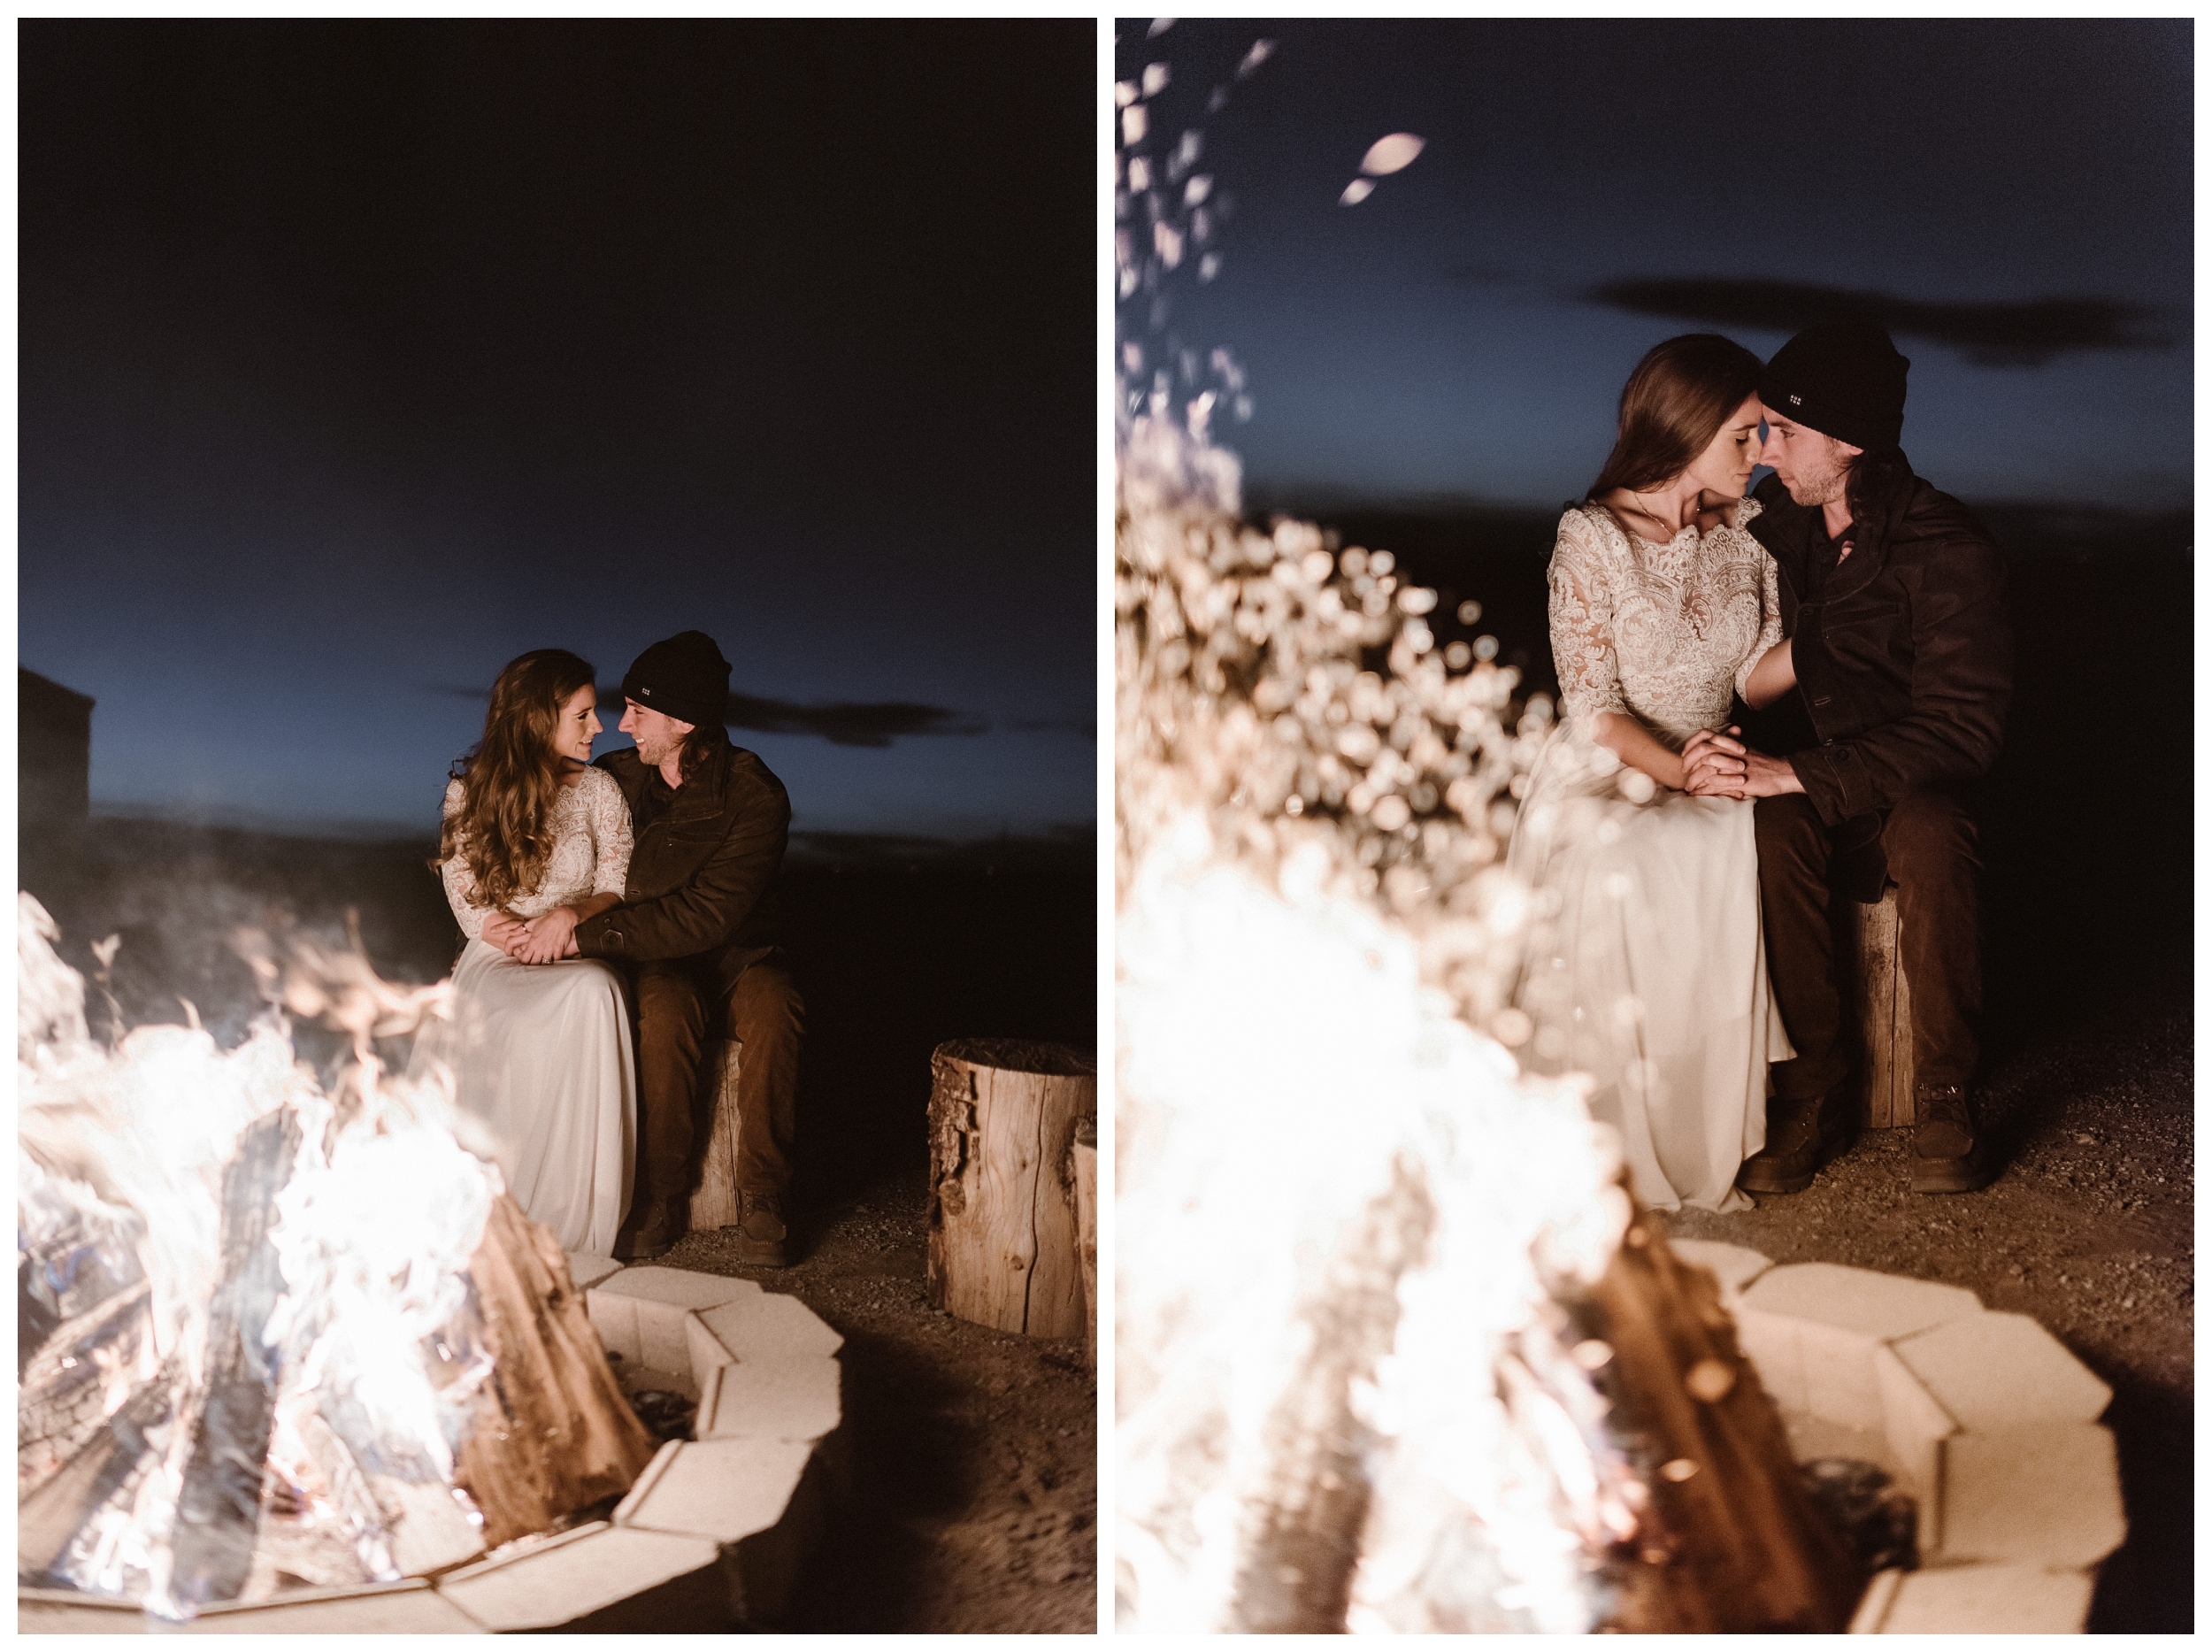 Sitting by the fire together in their winter wedding attire after their self solemnizing ceremony. Photo by Maddie Mae Photo, Adventures Instead.